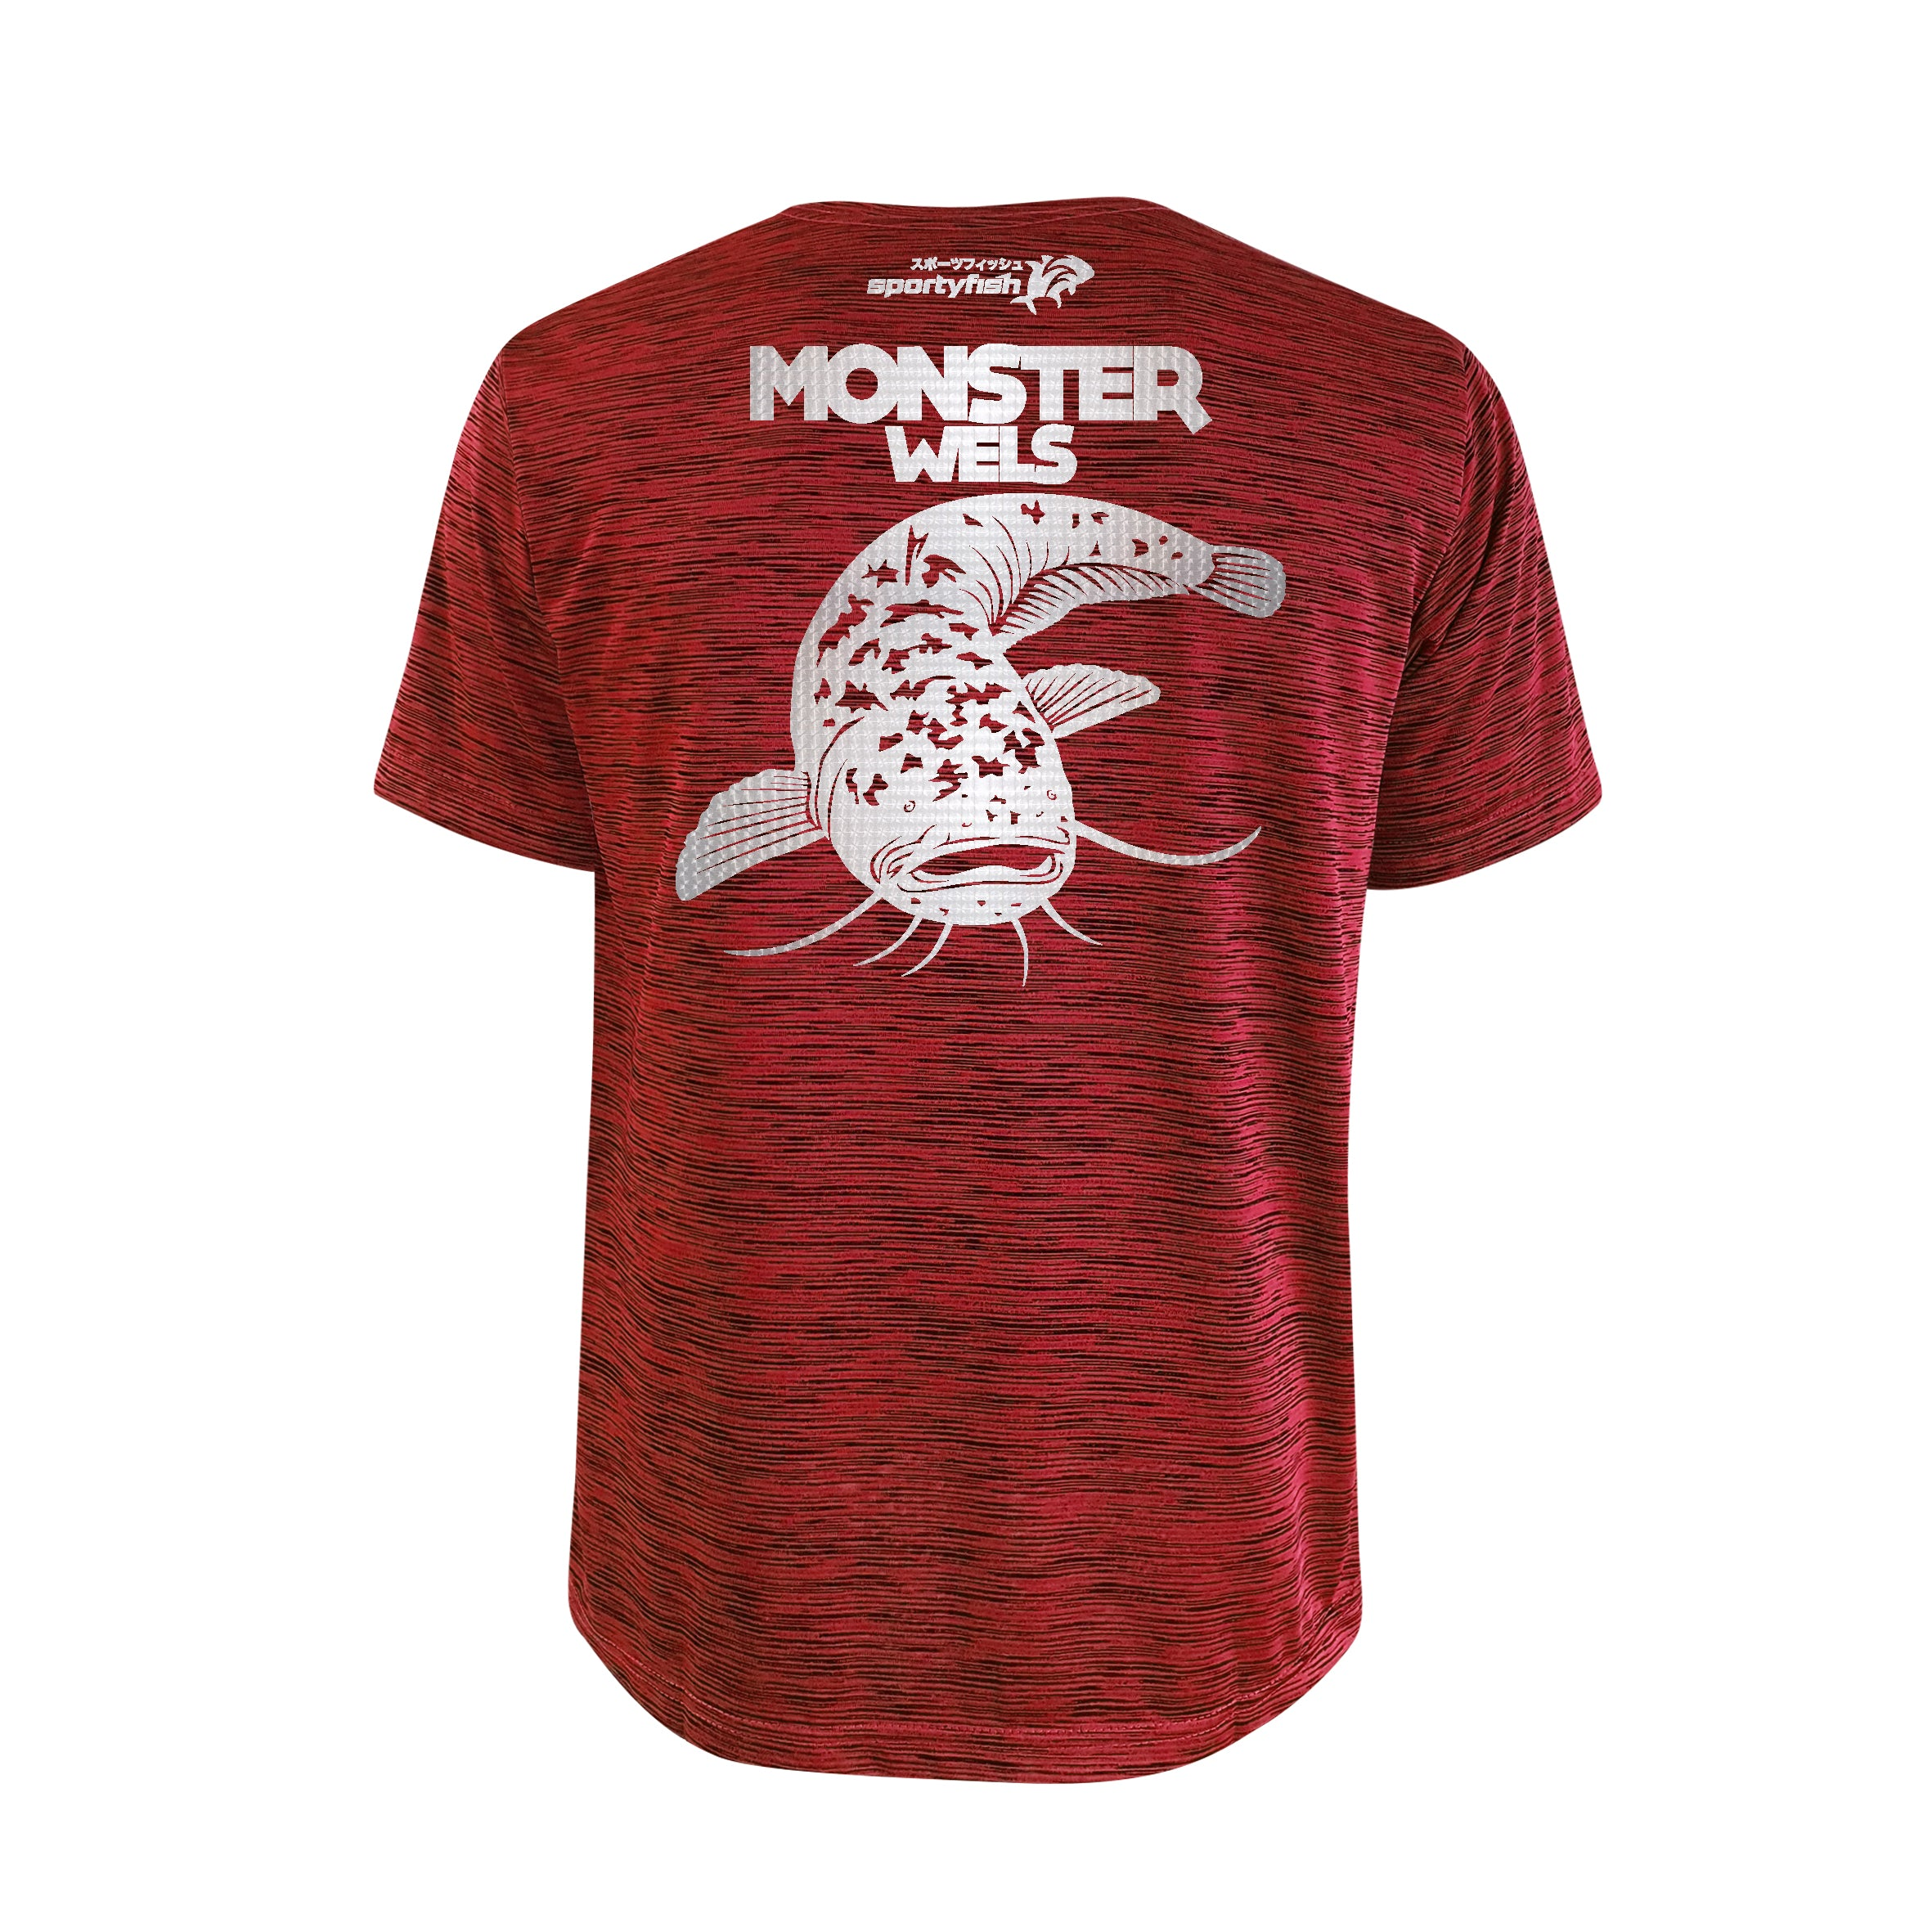 SportyFish Bold Series Red T-shirt(back view): The Wels Catfish(Monster Wels)